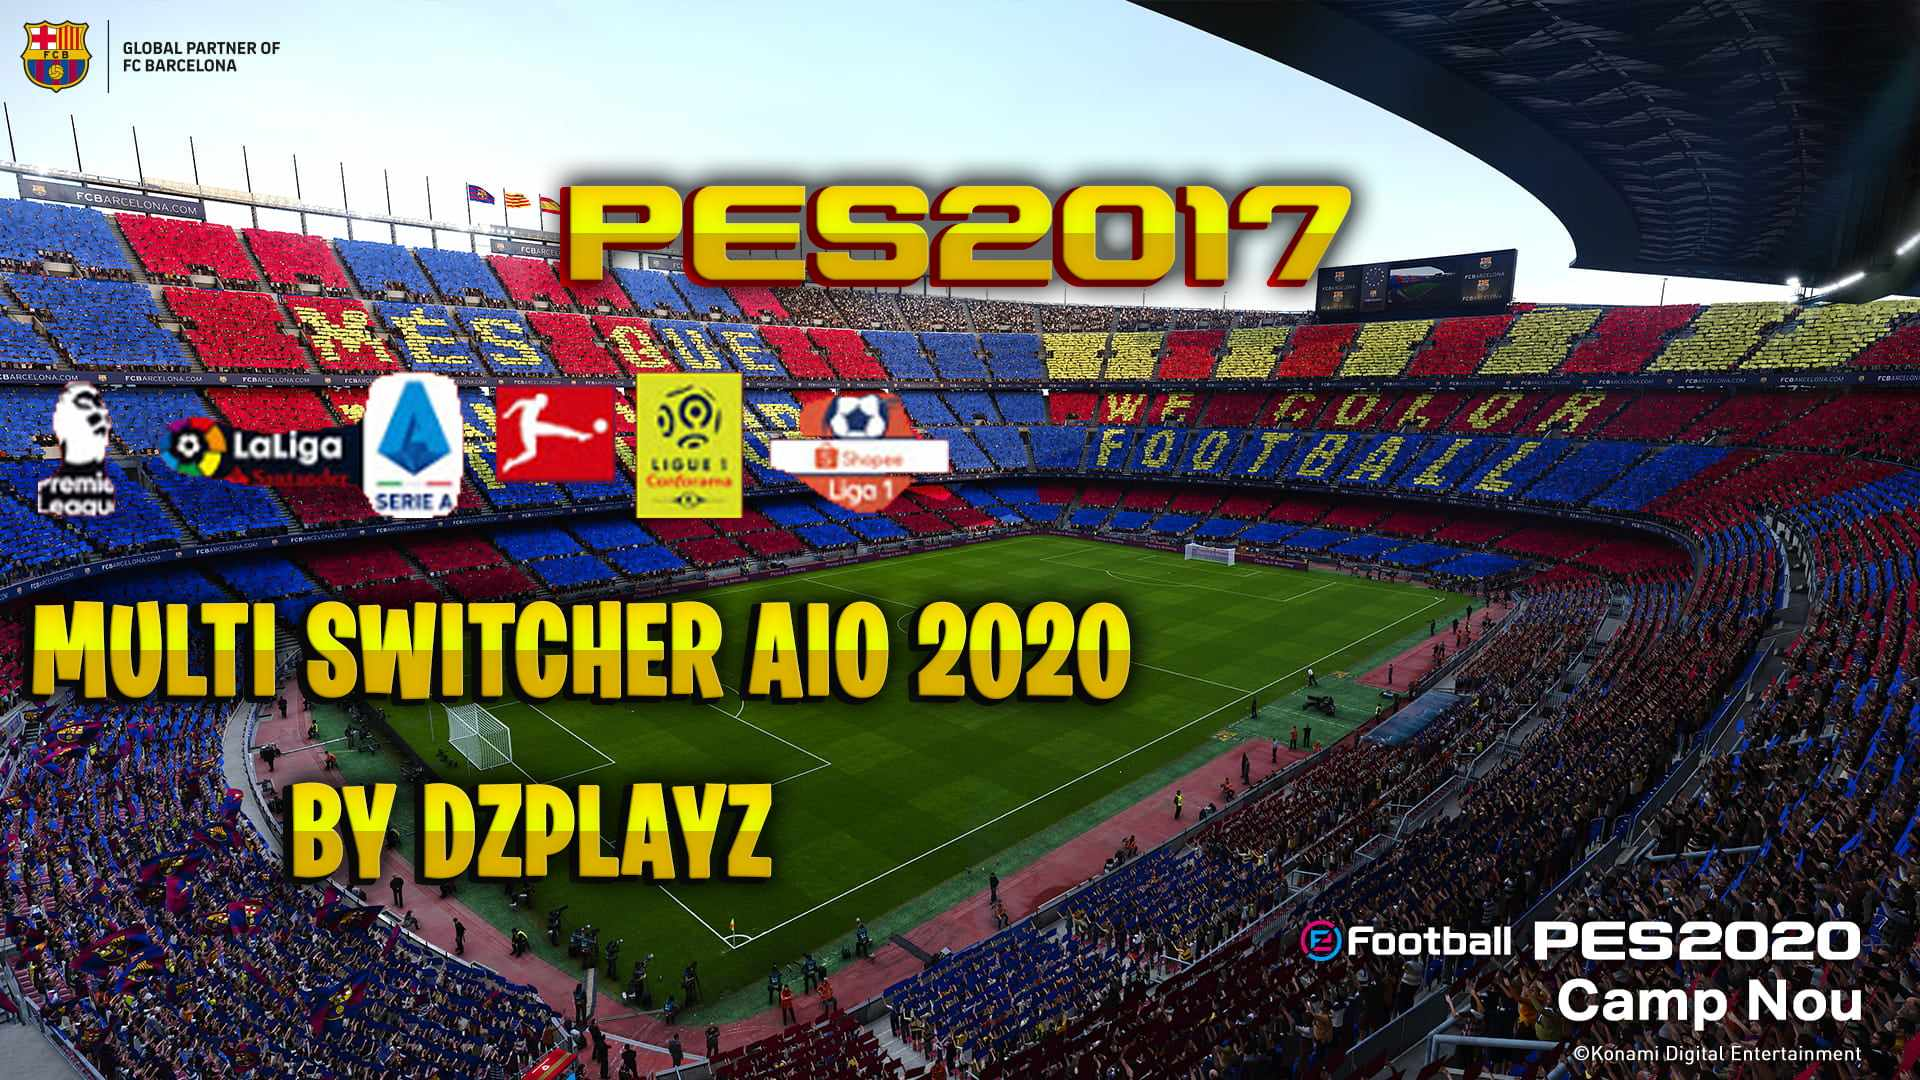 Multi Switcher AIO 2020 توسط DZPLAYZ برای PES 2017